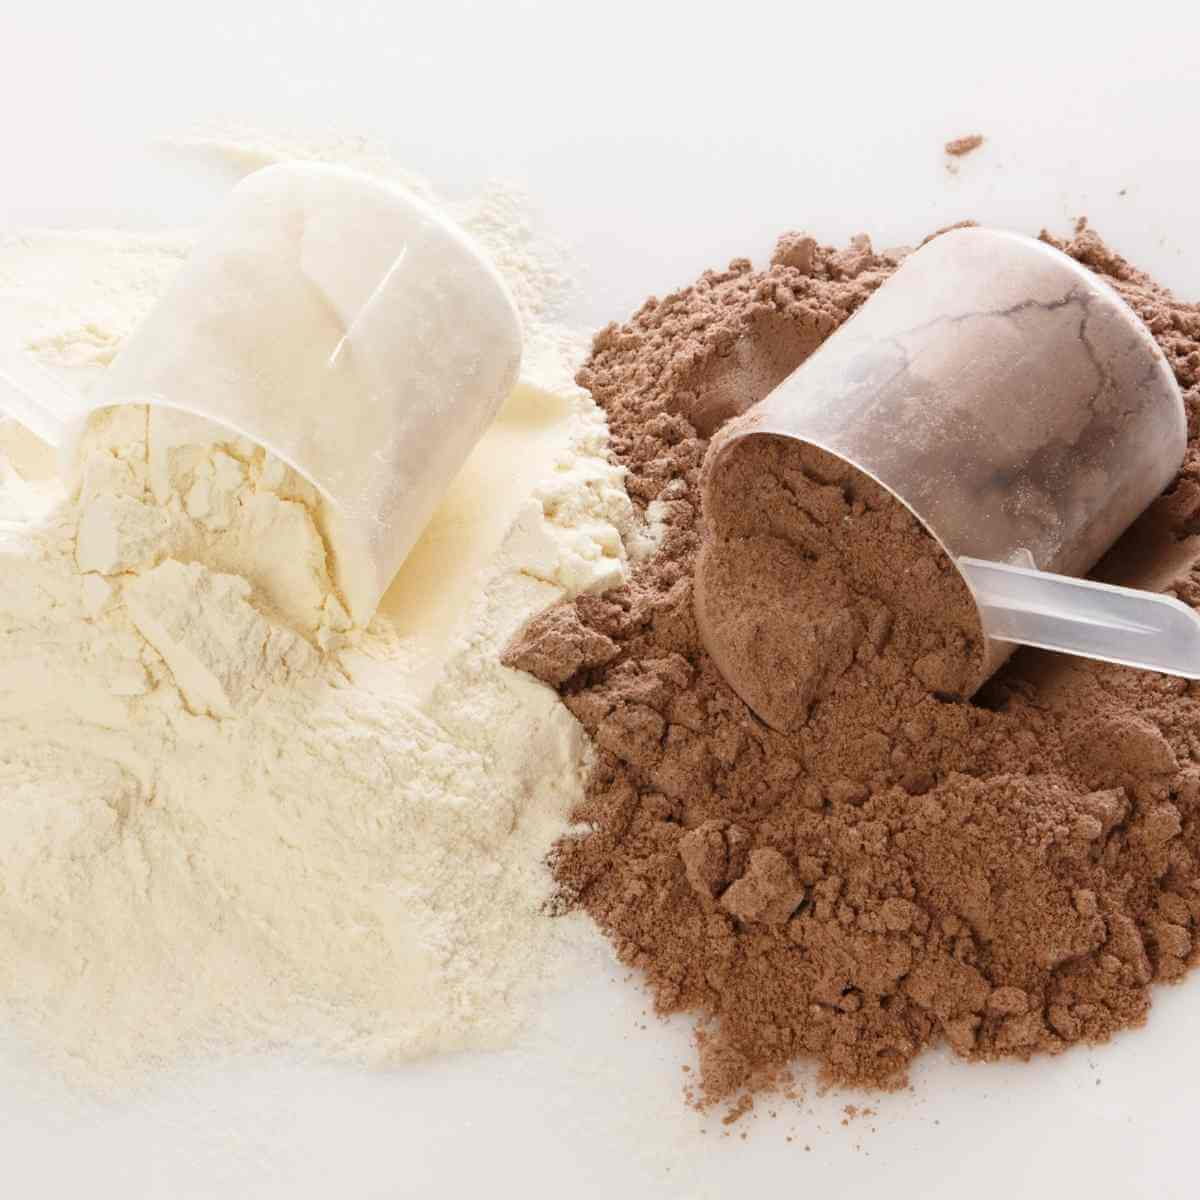 Scoops of allergy free protein powder in vanilla and chocolate flavors